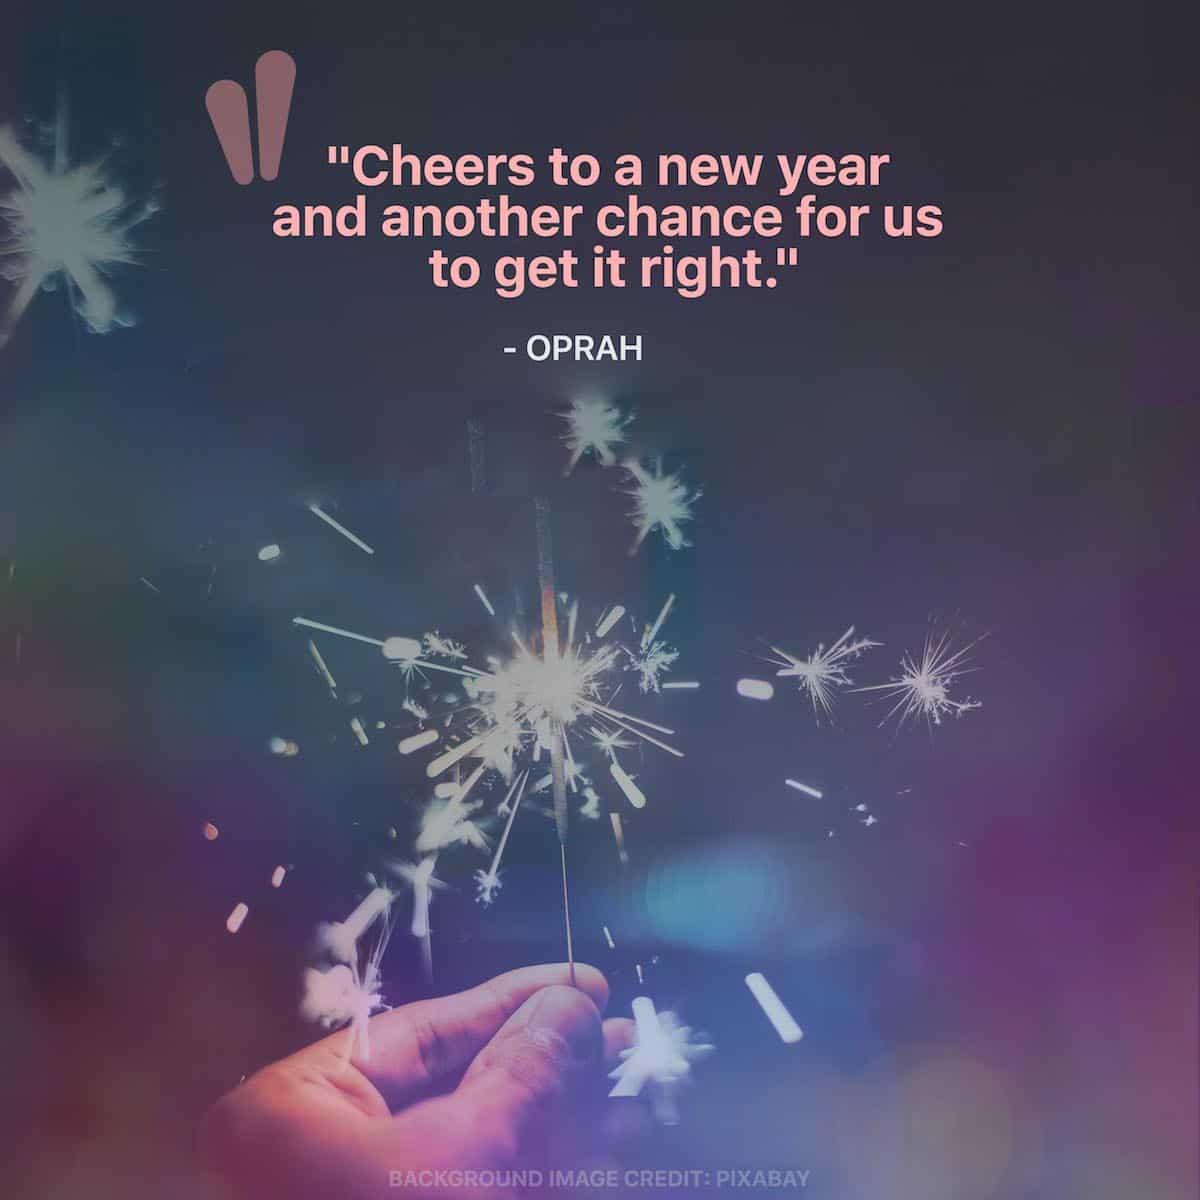 Image of: Beach Inspirational Travel Quotes The Poor Traveler 12 New Year Quotes Wishes Greetings For Travelers 2019 The Poor